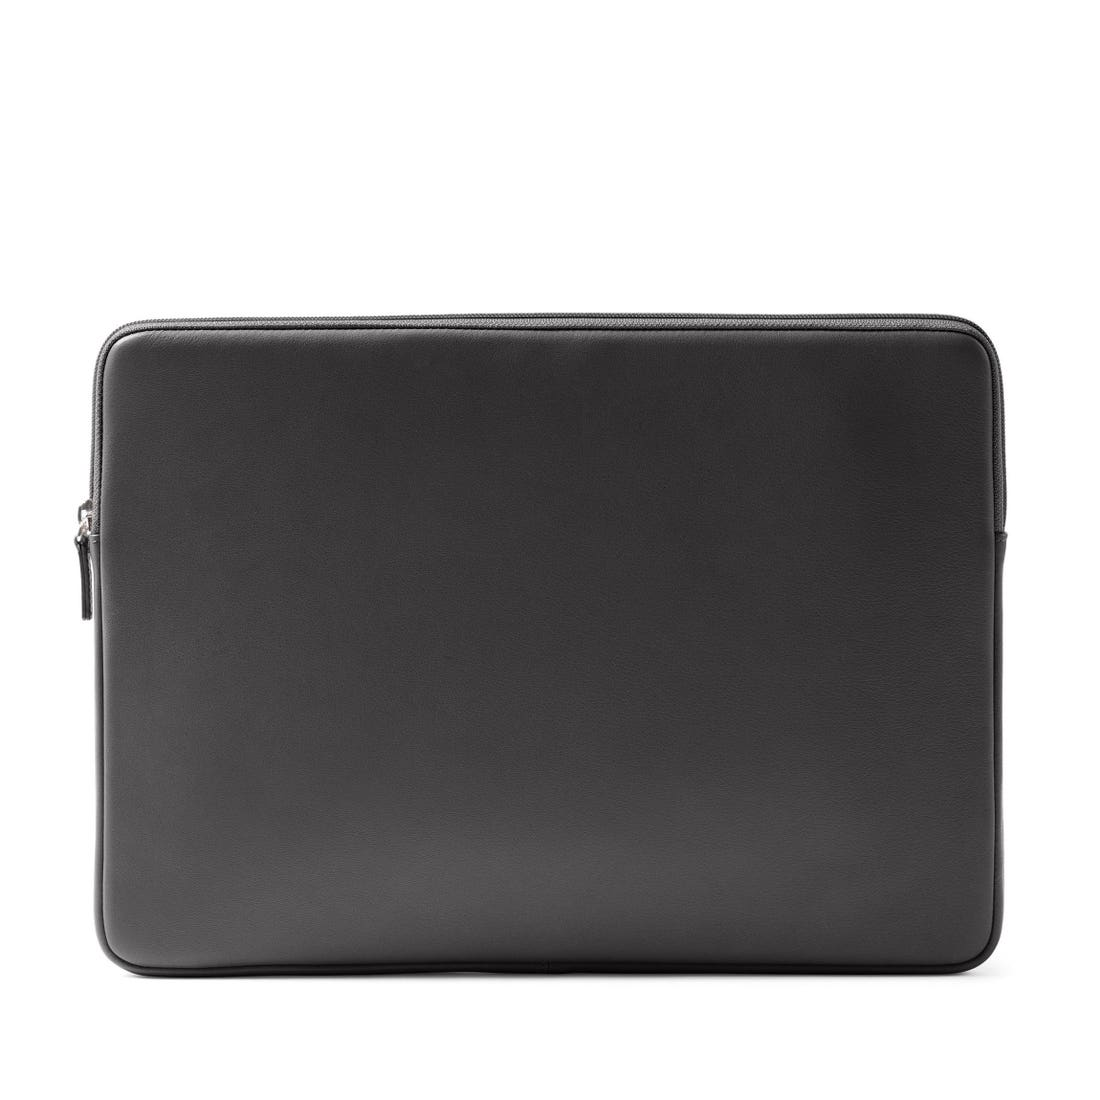 16 Inch MacBook Pro Sleeve